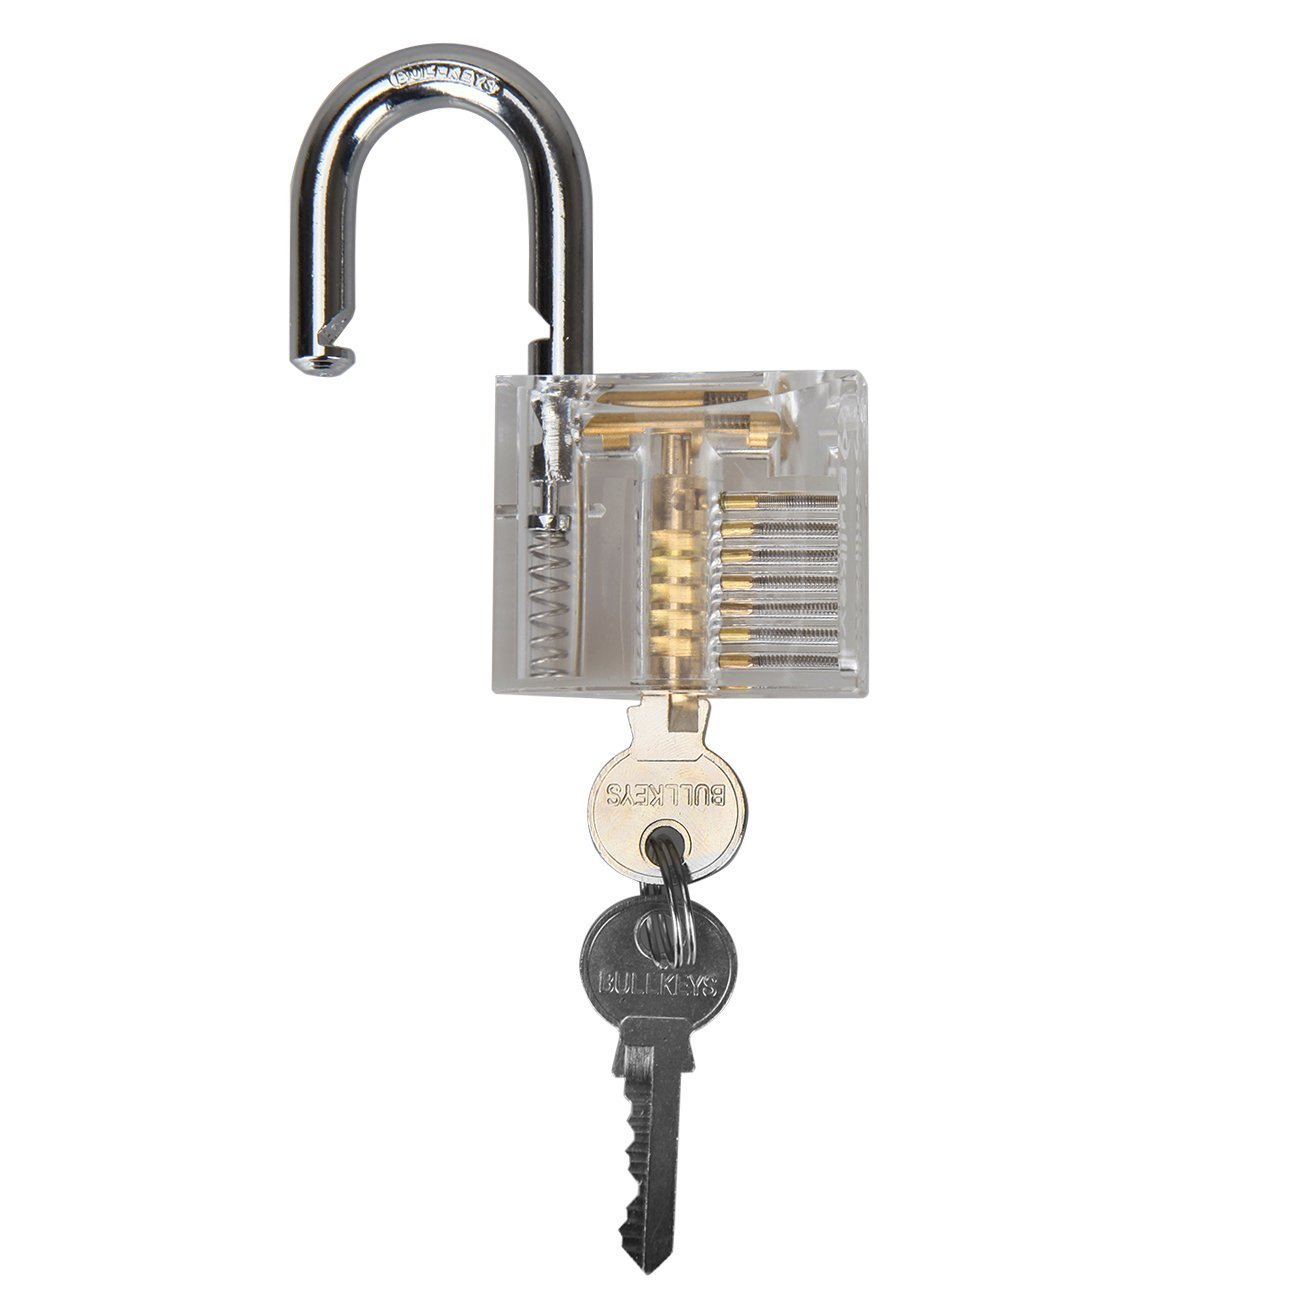 Ambienceo Professional Visible Cutaway of Padlocks Lock for Locksmith Lock Training Practice with 2 keys